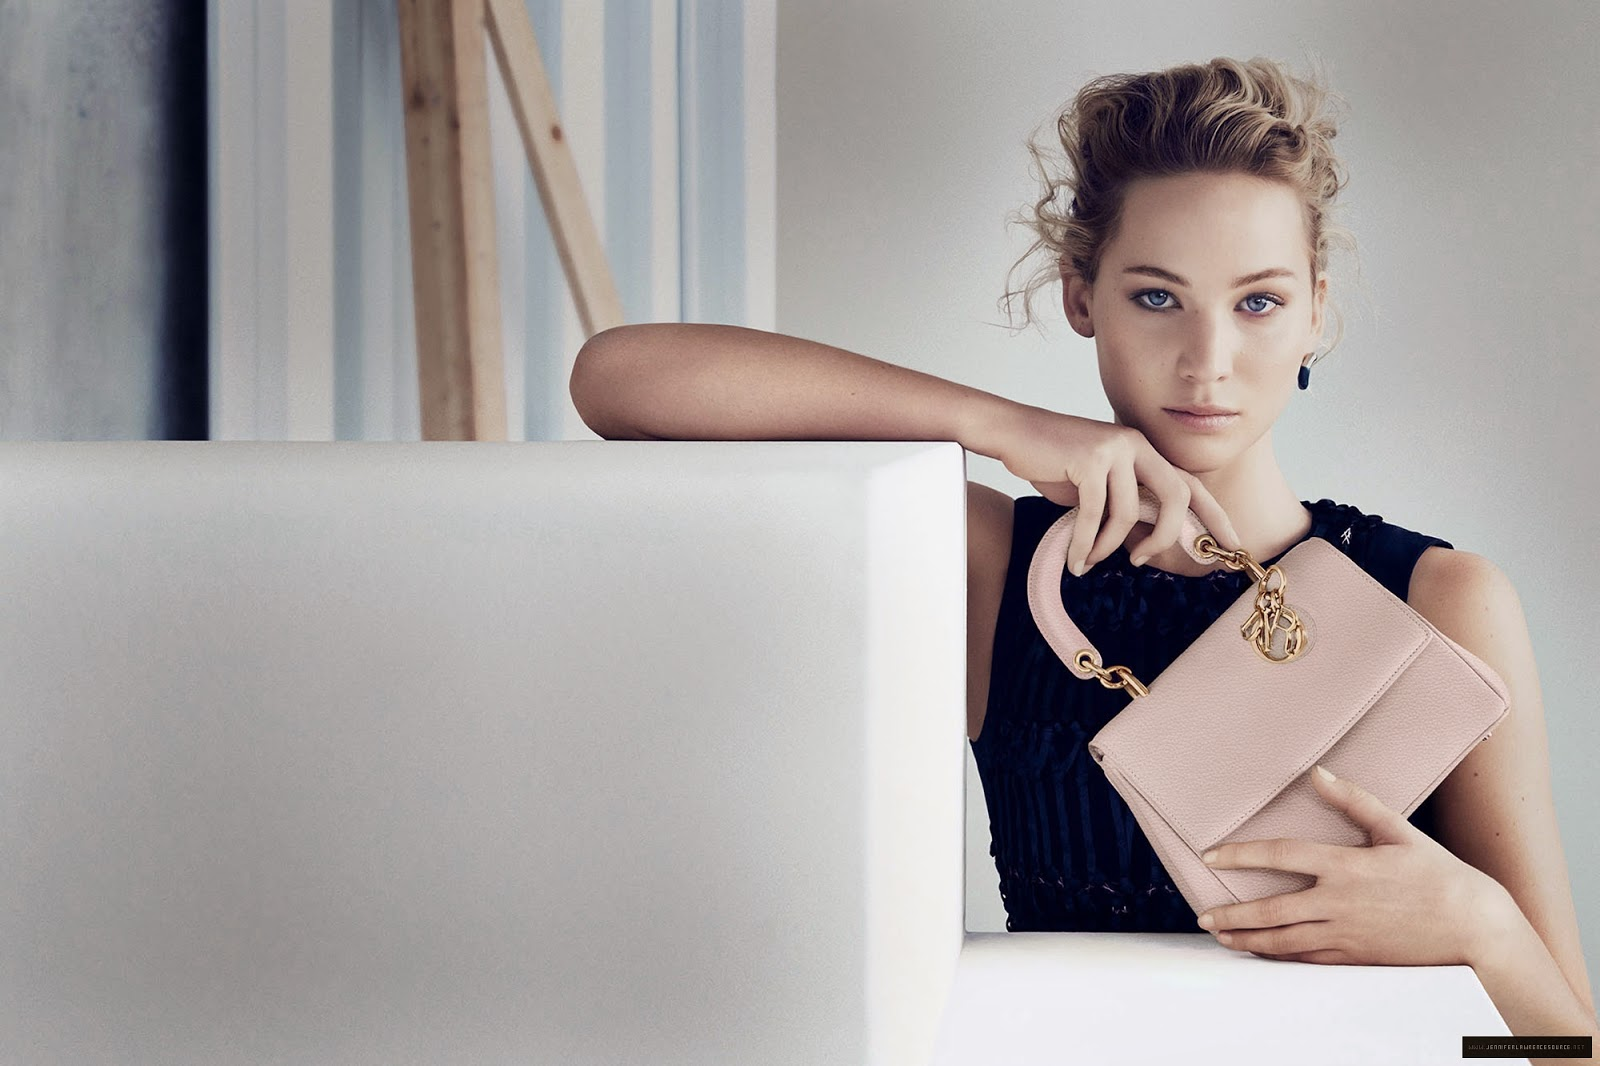 Dior Spring/Summer 2015 Campaign featuring Jennifer Lawrence